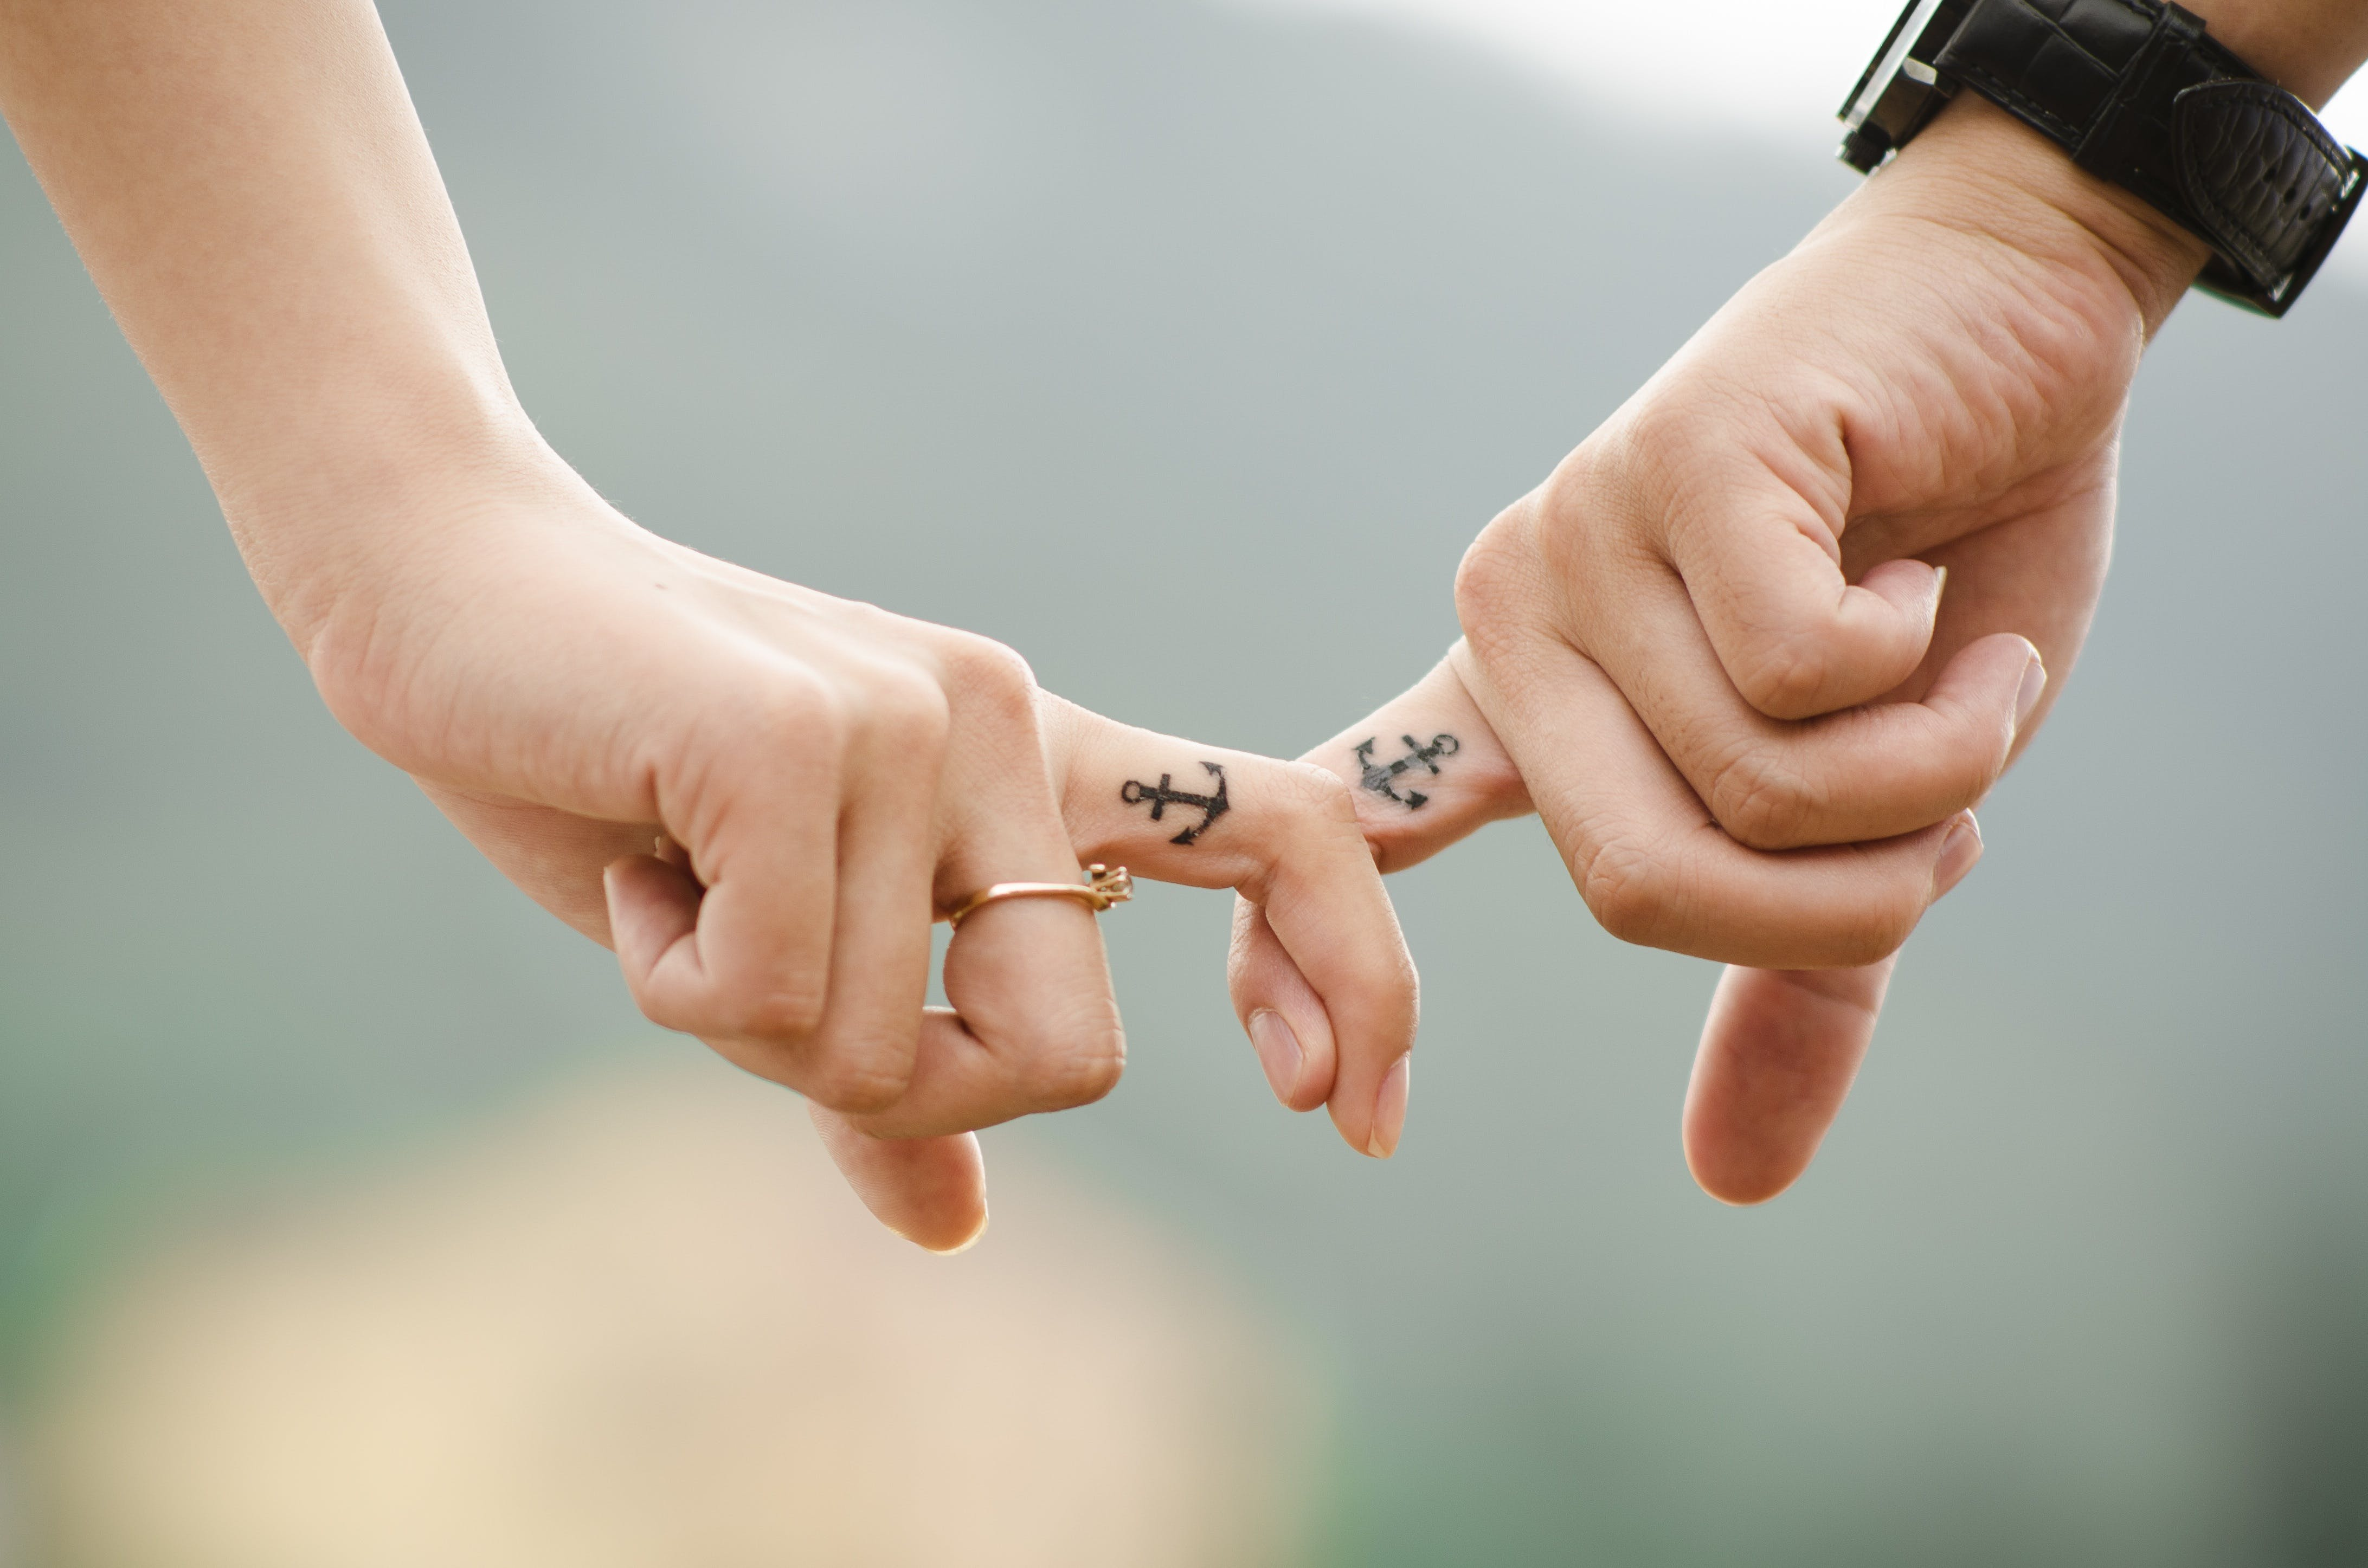 Man and Woman Interlocking Index Fingers With Anchor Tattoos